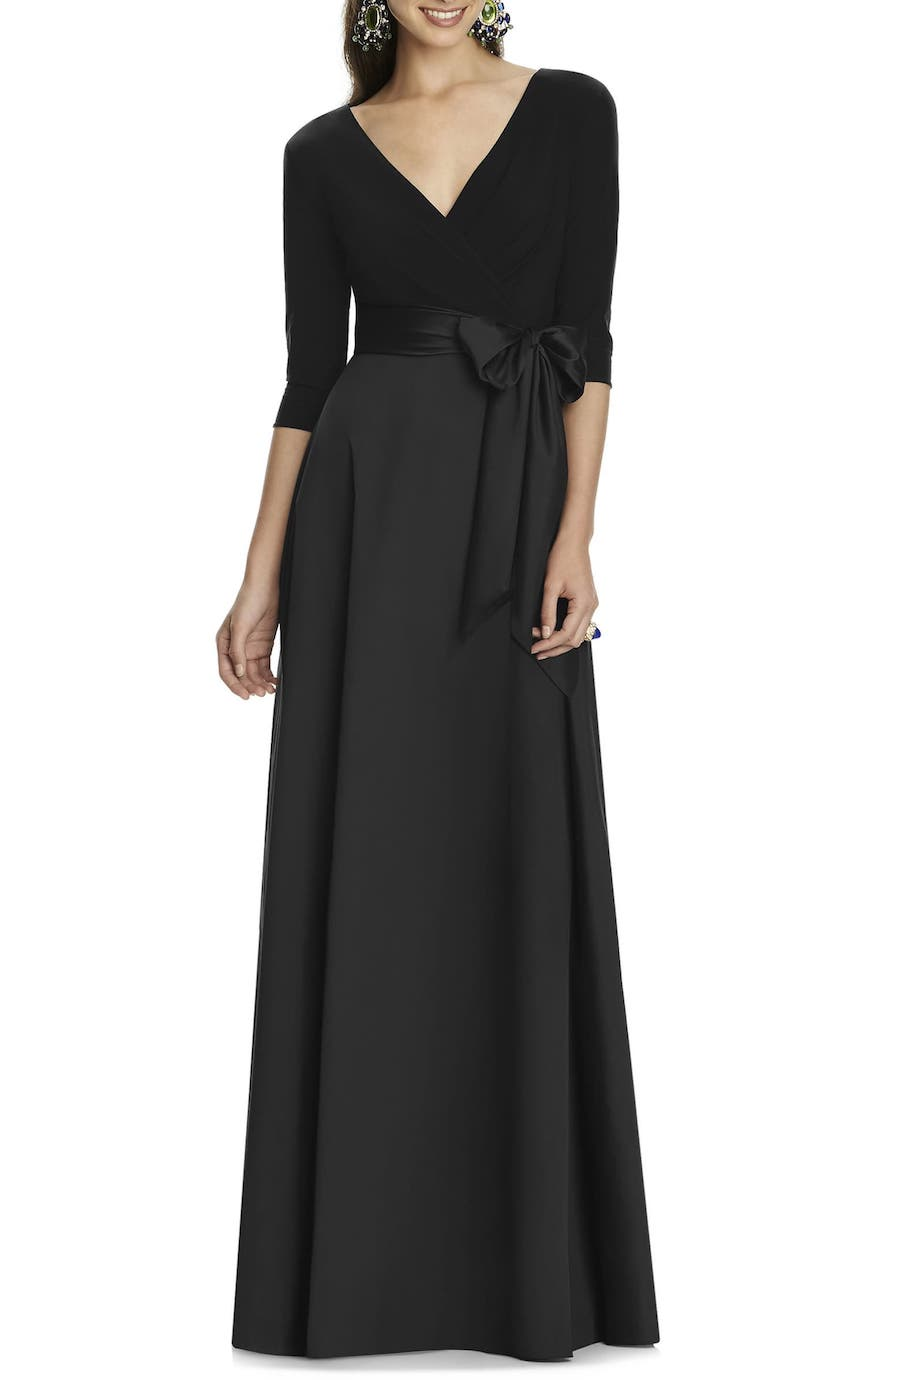 9a70798361a1 13 Mother-of-the-Bride Dresses for Every Type of Wedding | Real Simple